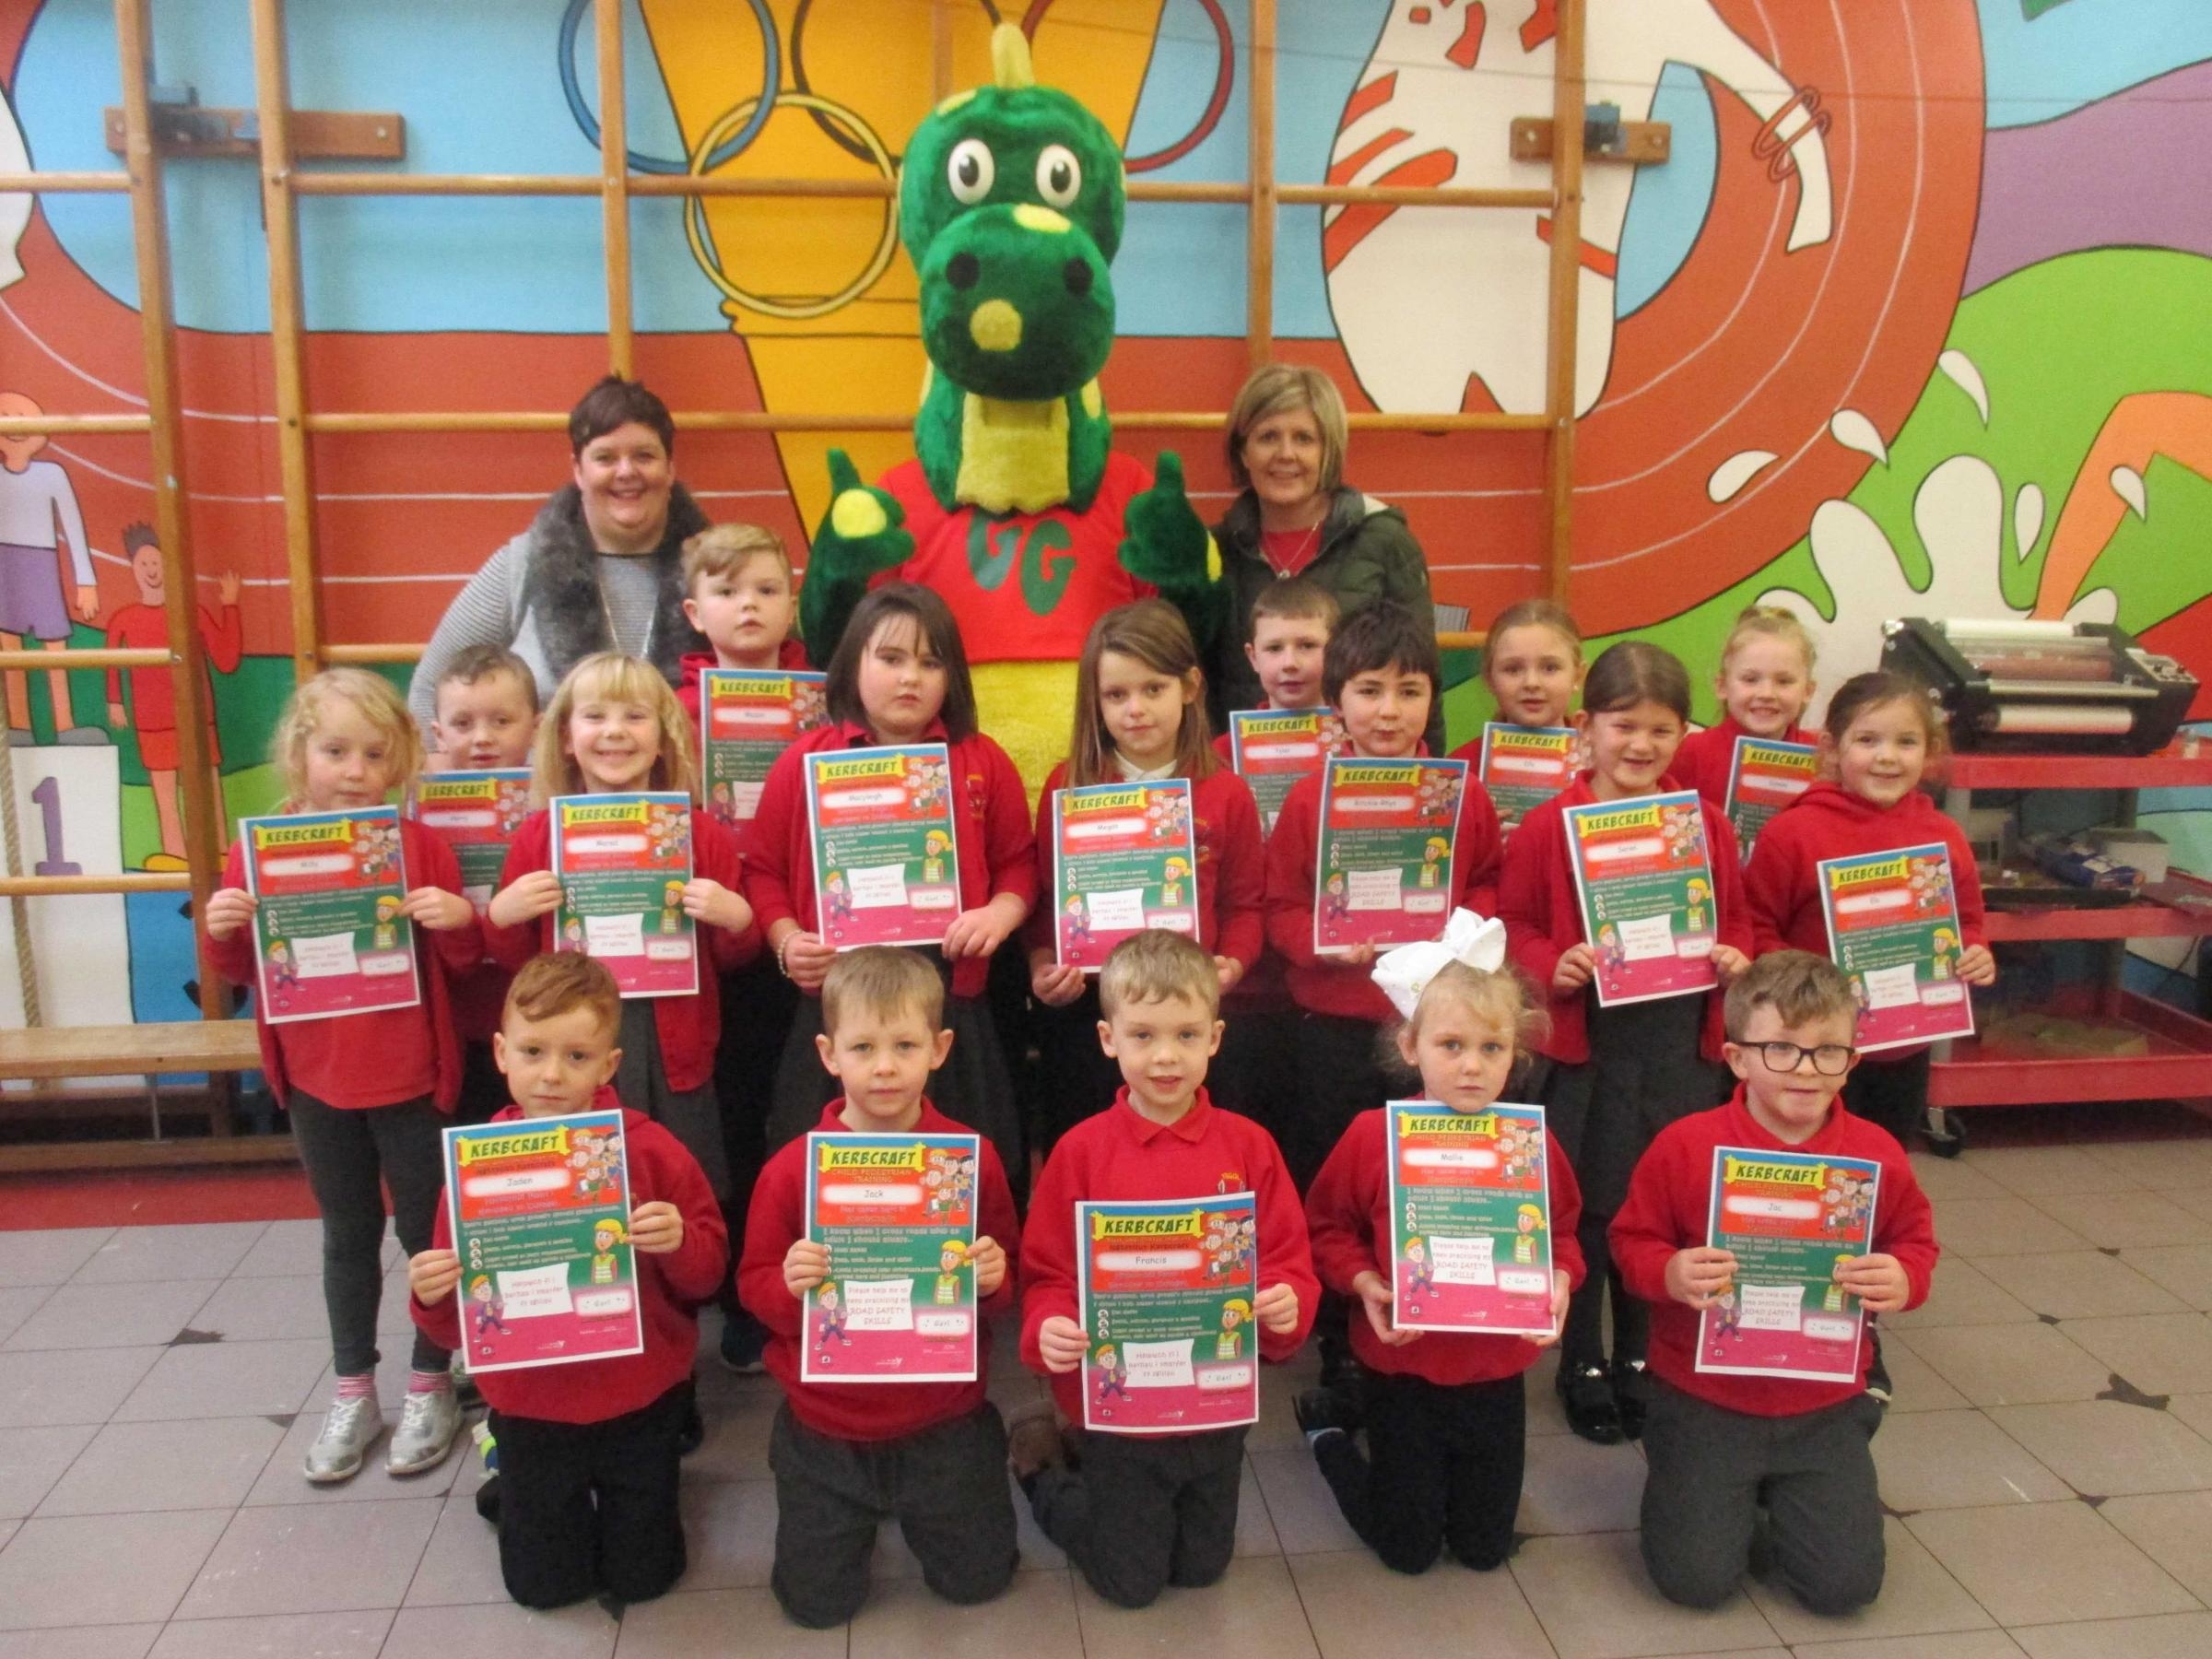 Pupils at Ysgol Llechydedach presented with certificates by Gary GoSafe, accompanied by Carmarthenshire County Council's Kerbcraft staff and trainers.